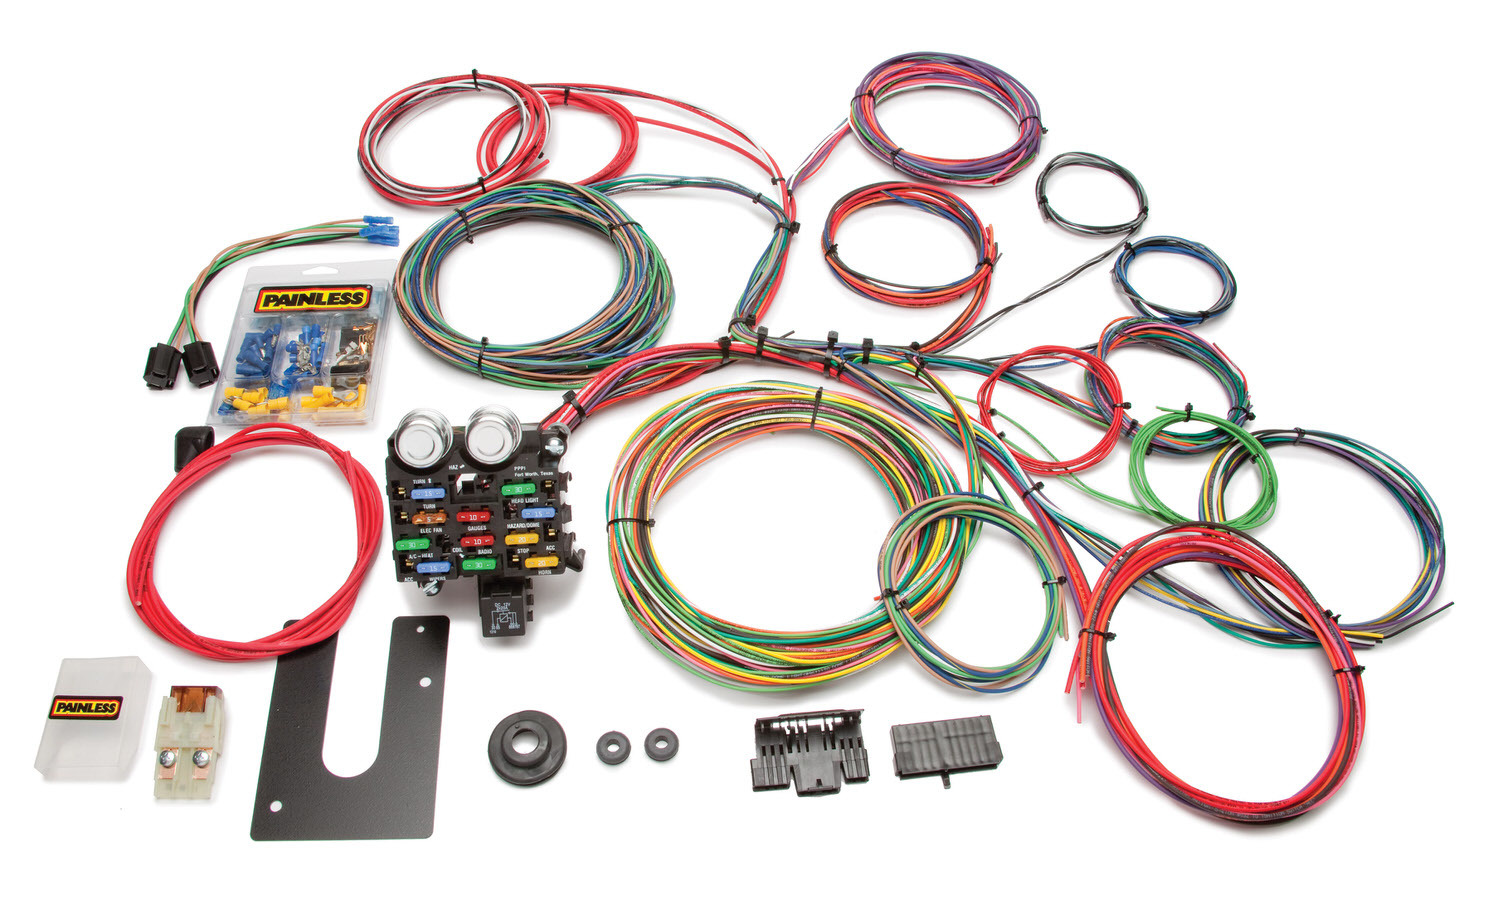 Painless Wiring 10102 Car Wiring Harness, Classic Customizable, Complete, 21 Circuit, Complete, Universal, Kit